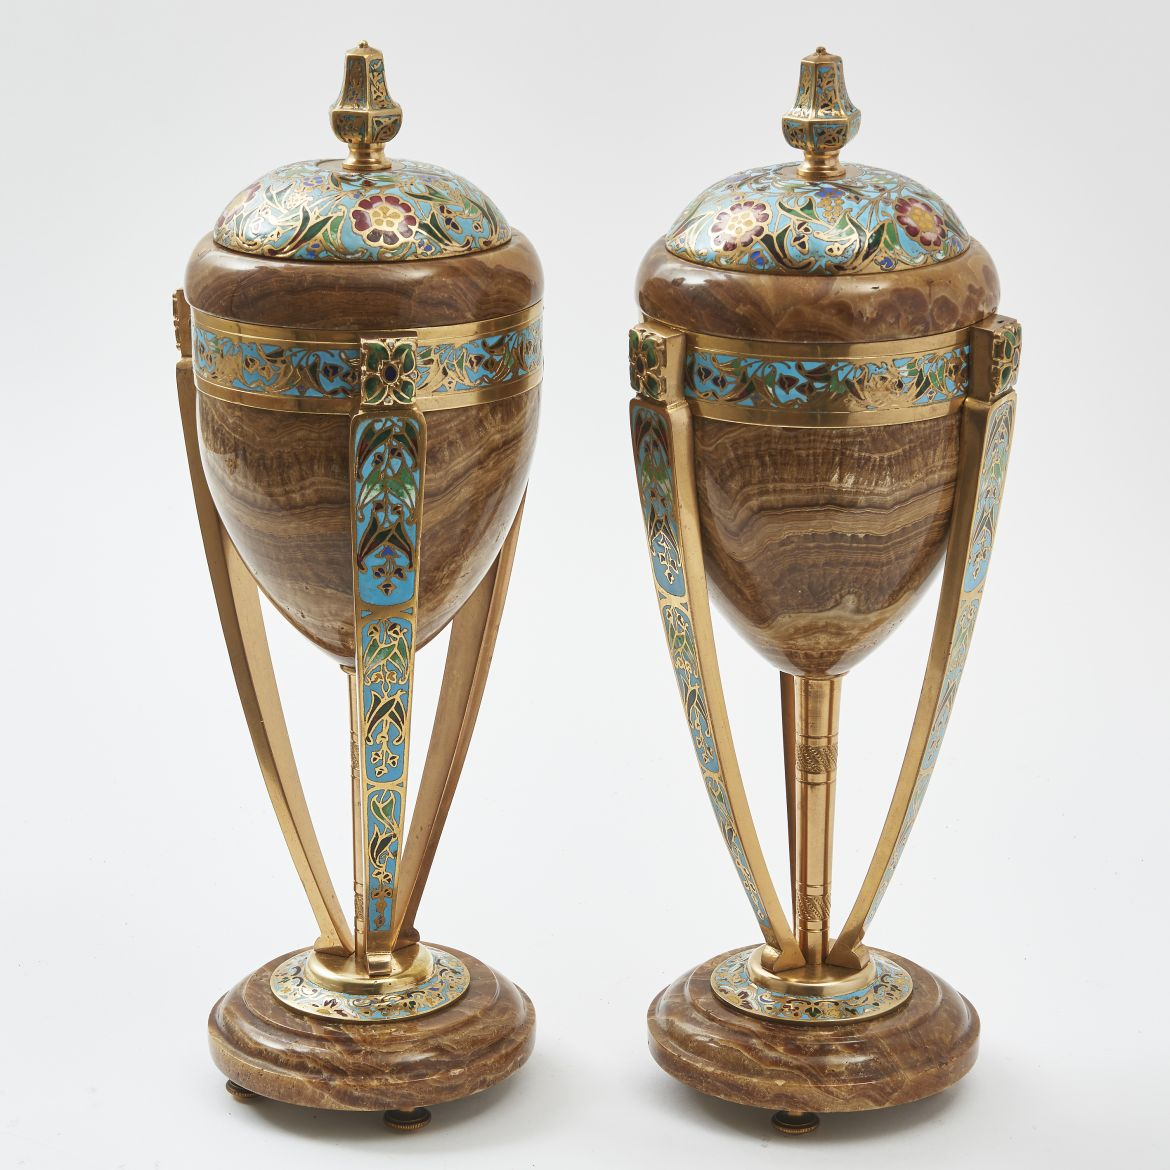 Brown Onyx Art Nouveau Urns